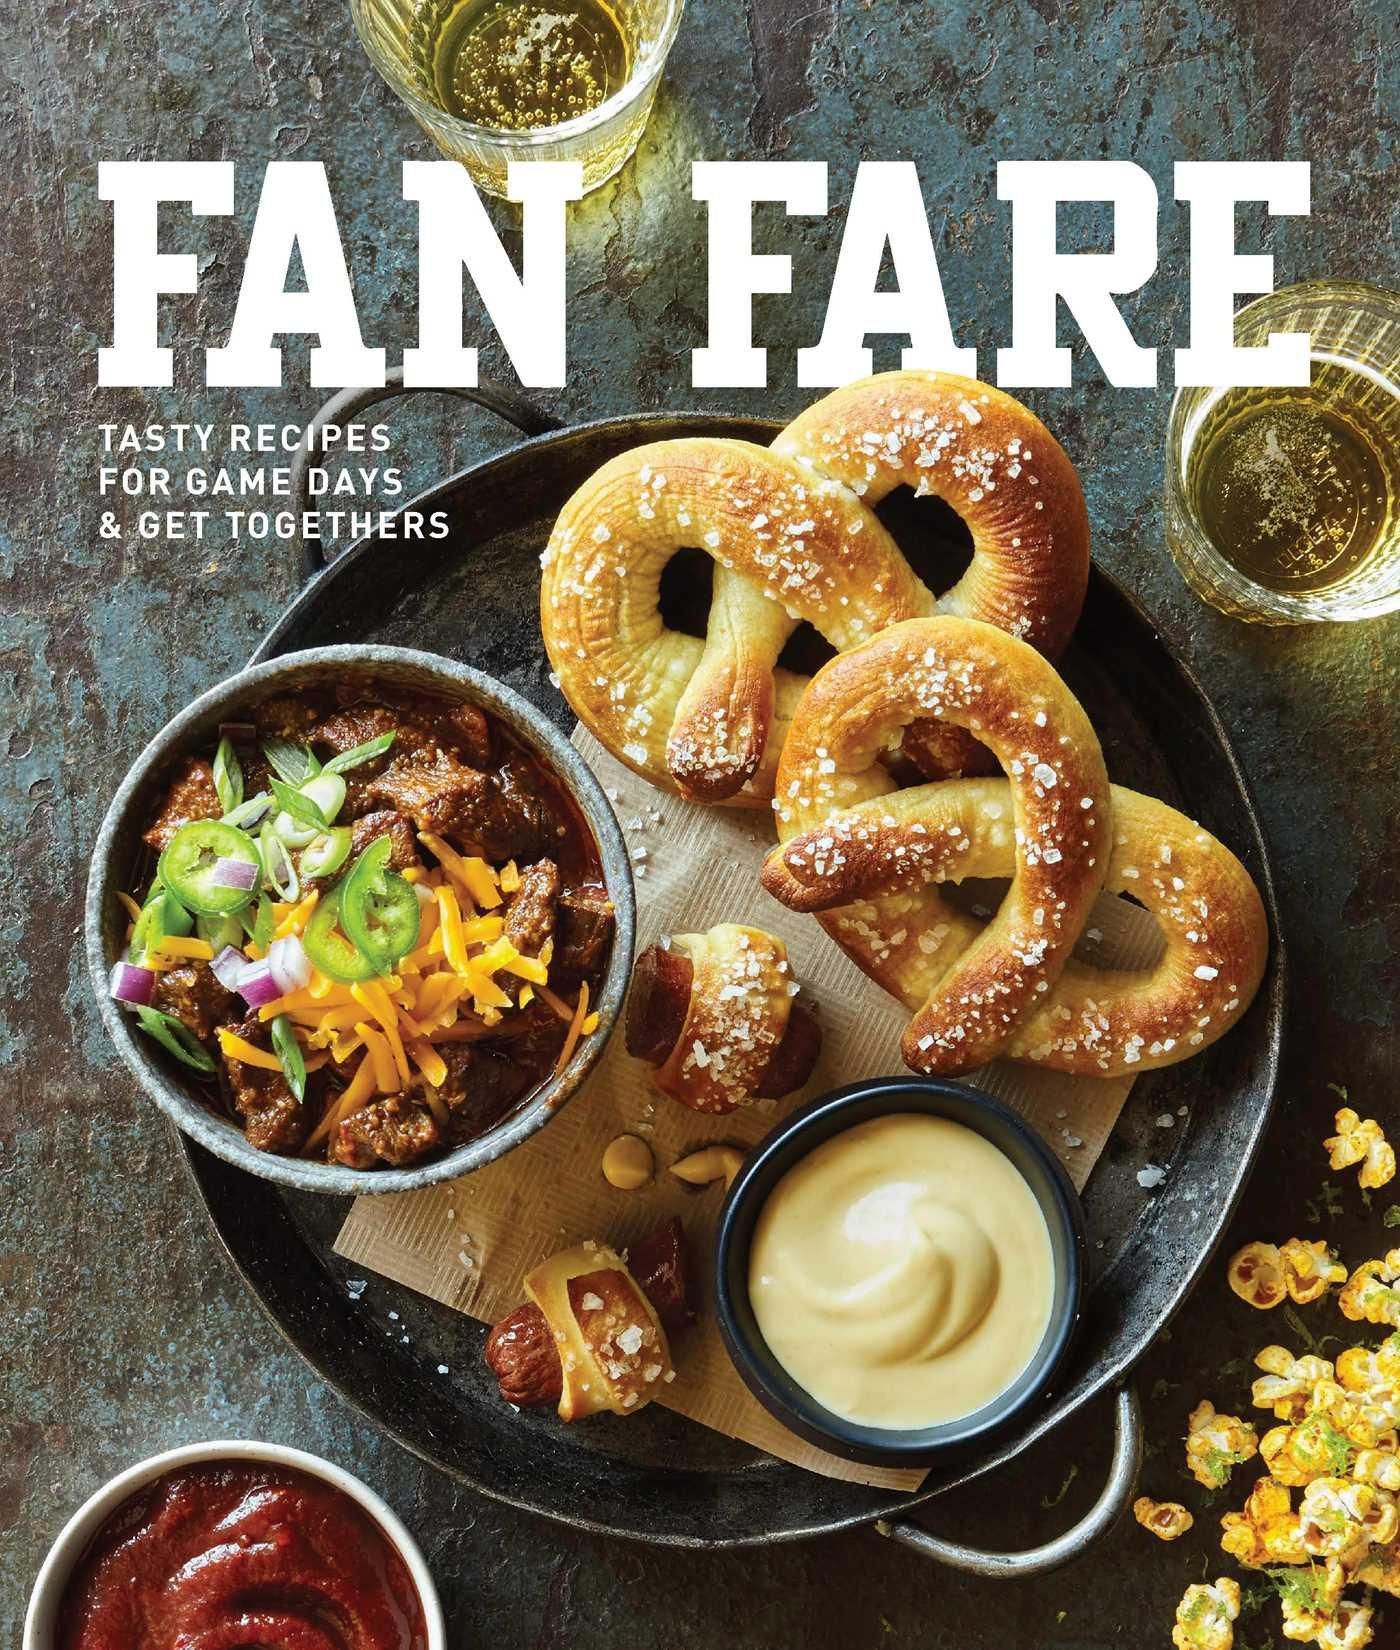 Fan Fare: Game Day Recipes for Delicious Finger Foods, Drinks & More pdf